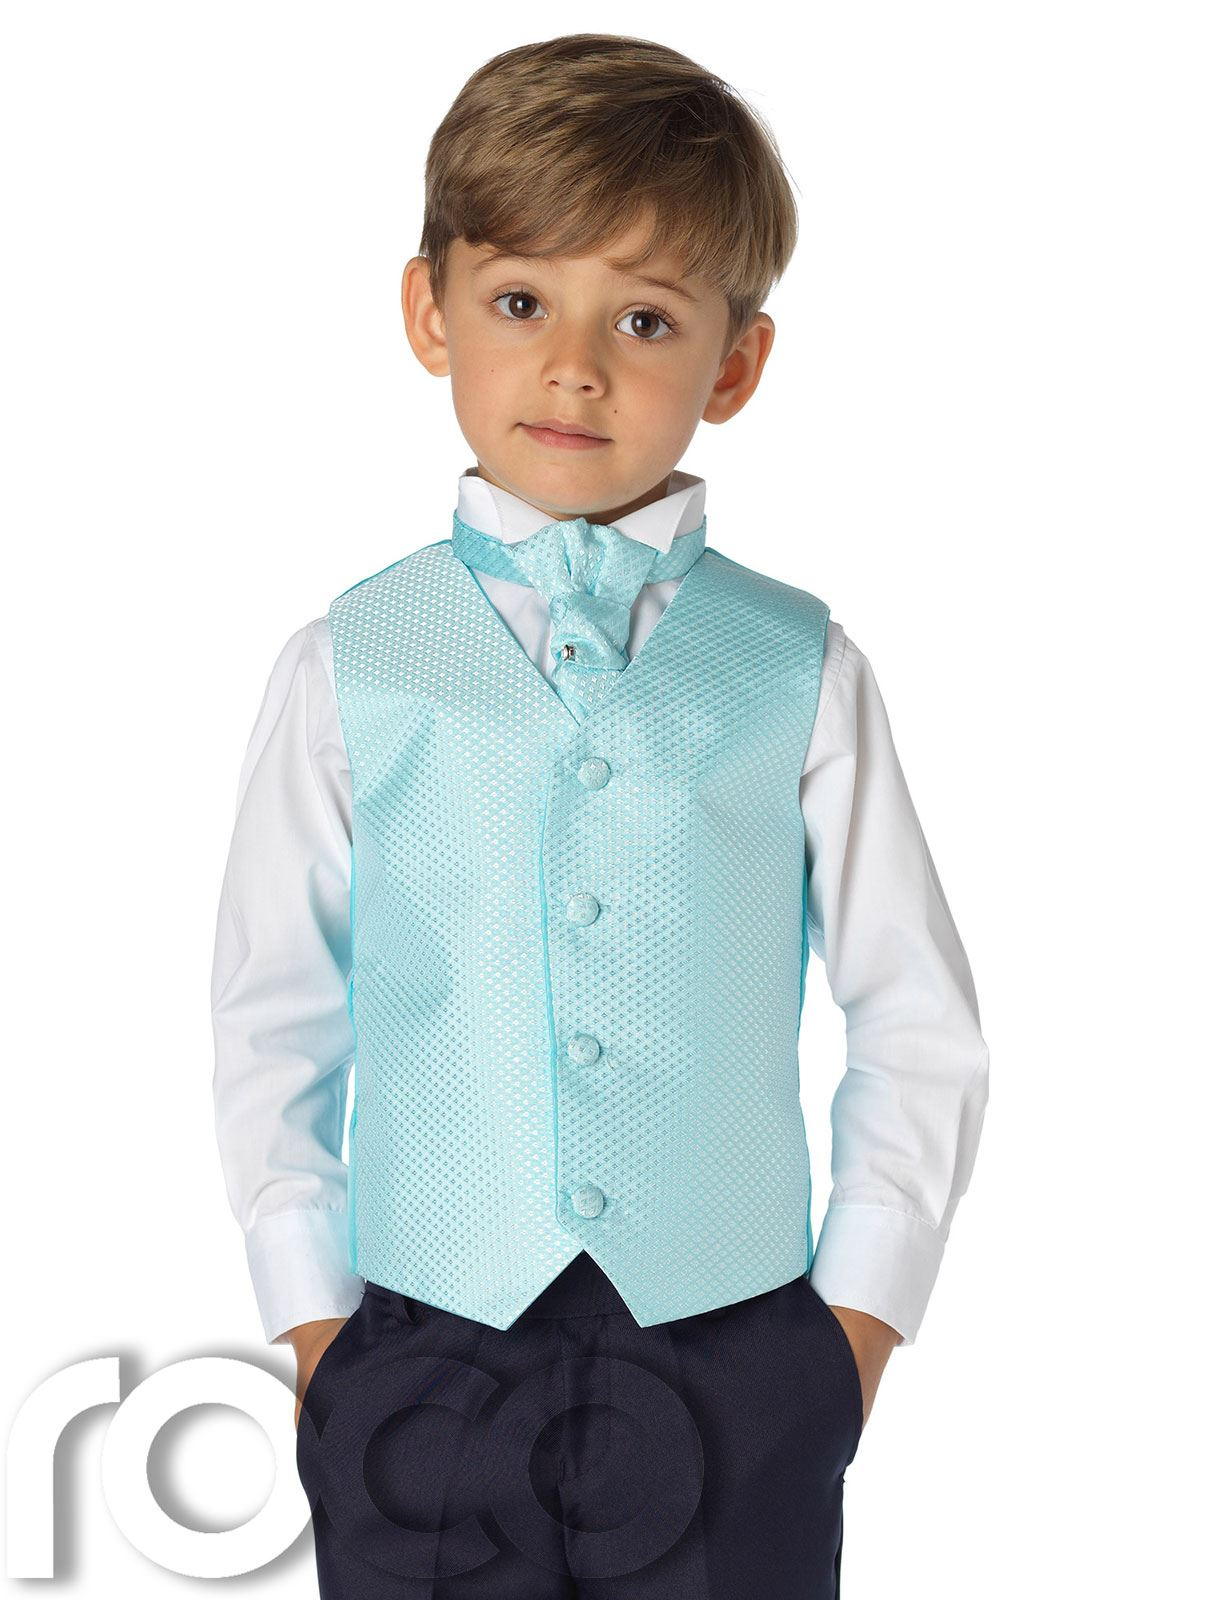 Boys Waistcoat Suits, Page Boy Suits, Wedding Suits, Boys Suits ...